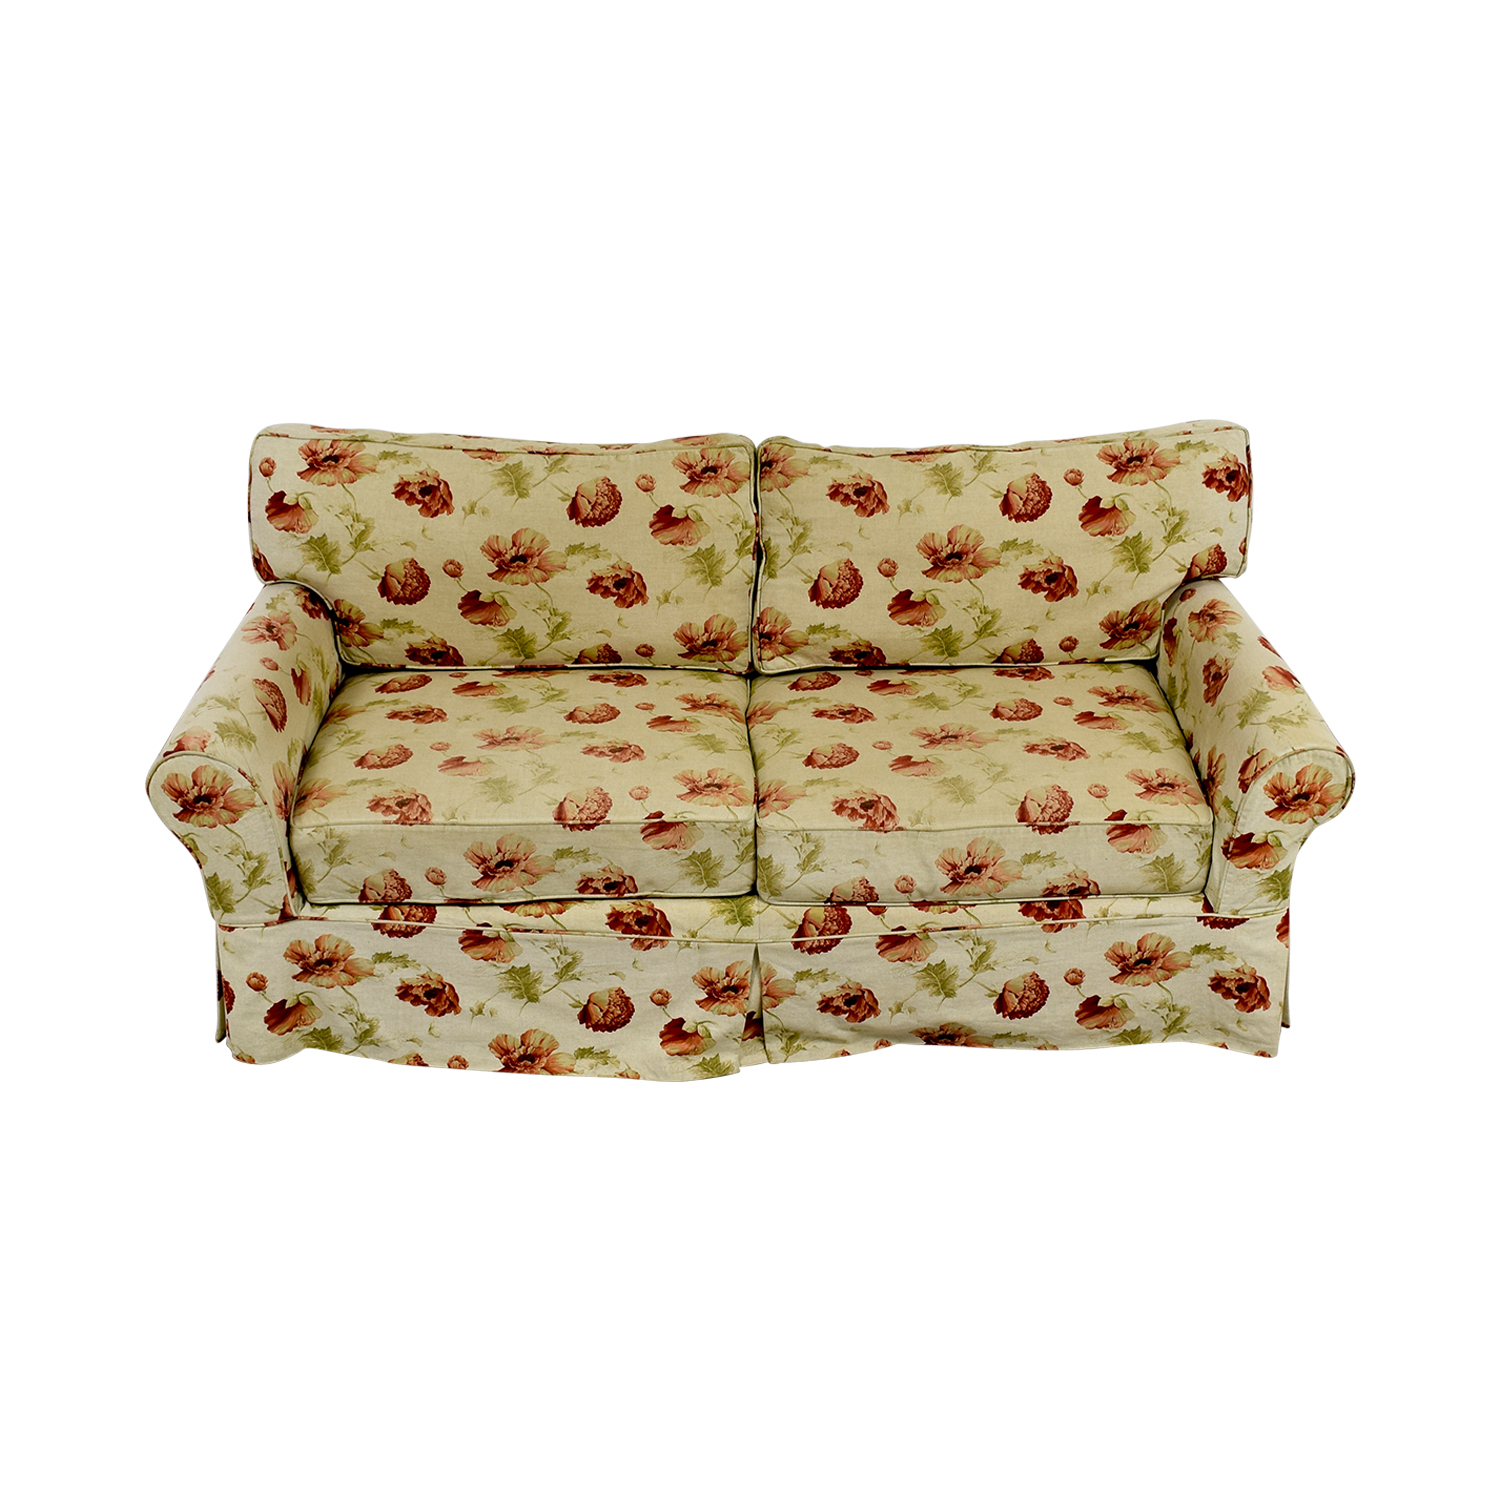 shop Crate & Barrel Slip Covered Floral Sofa Crate & Barrel Sofas